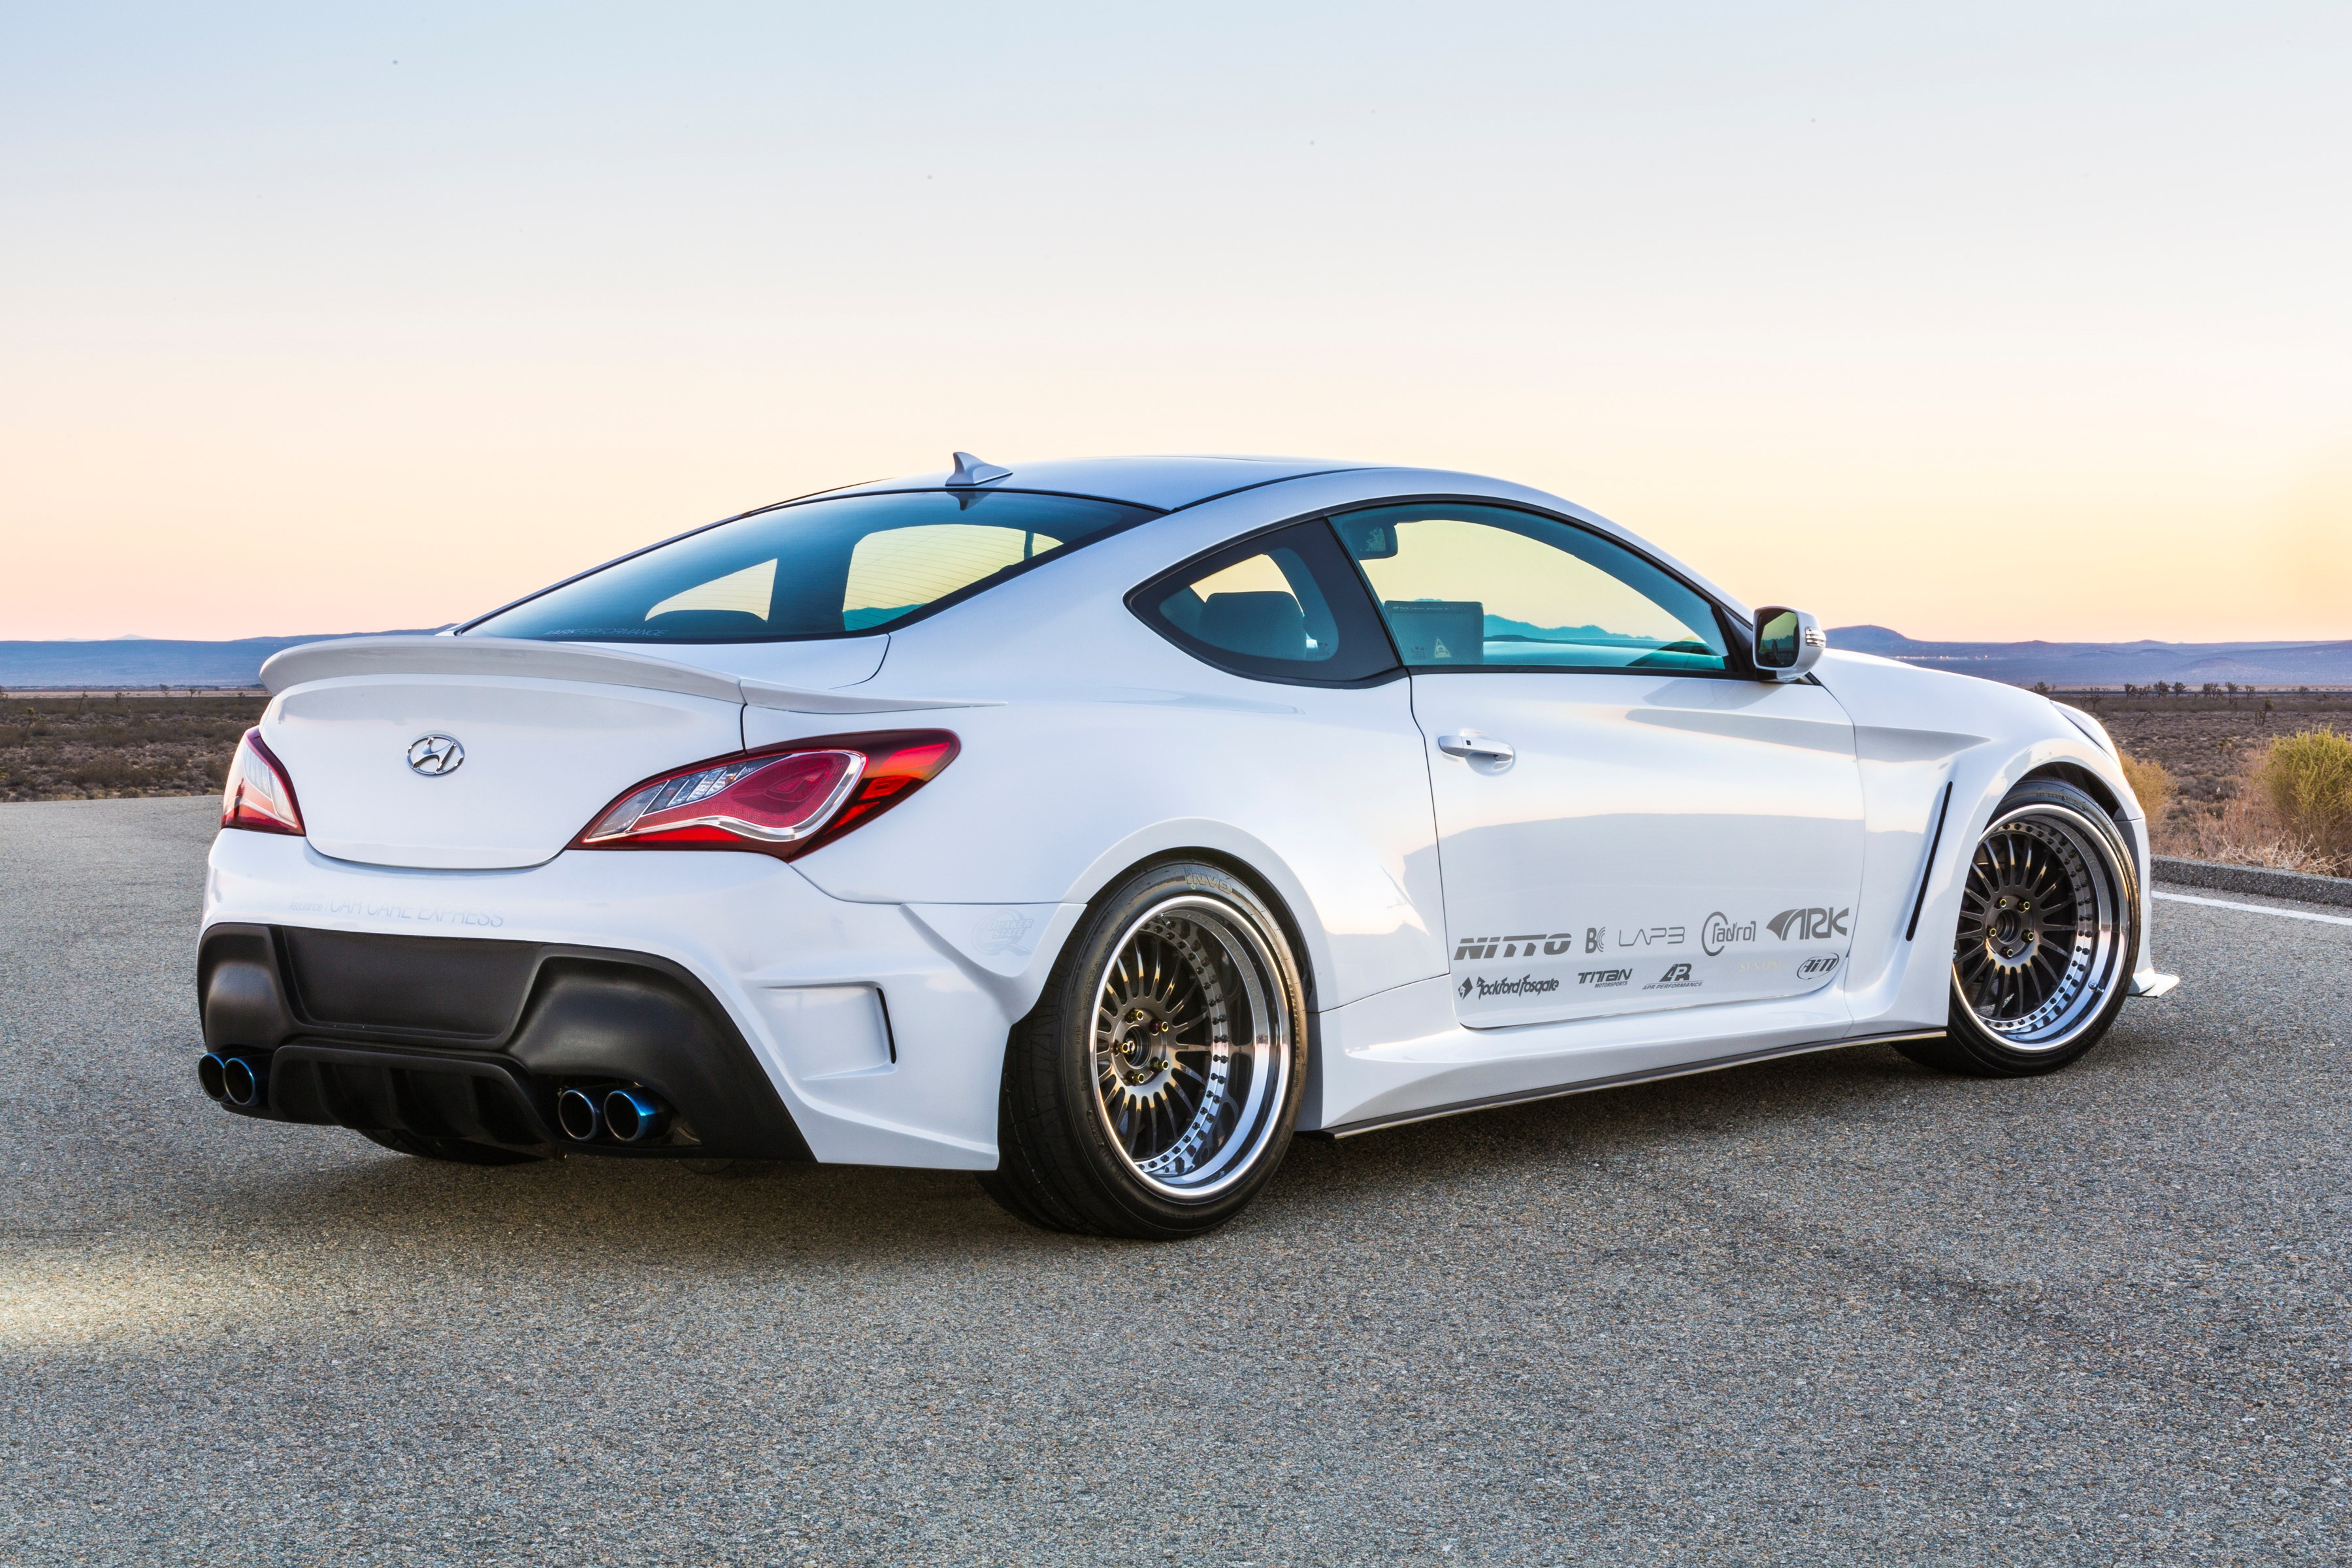 Hyundai Exhibits Six Custom Modded Models At Sema Image 403307 HD Wallpapers Download free images and photos [musssic.tk]